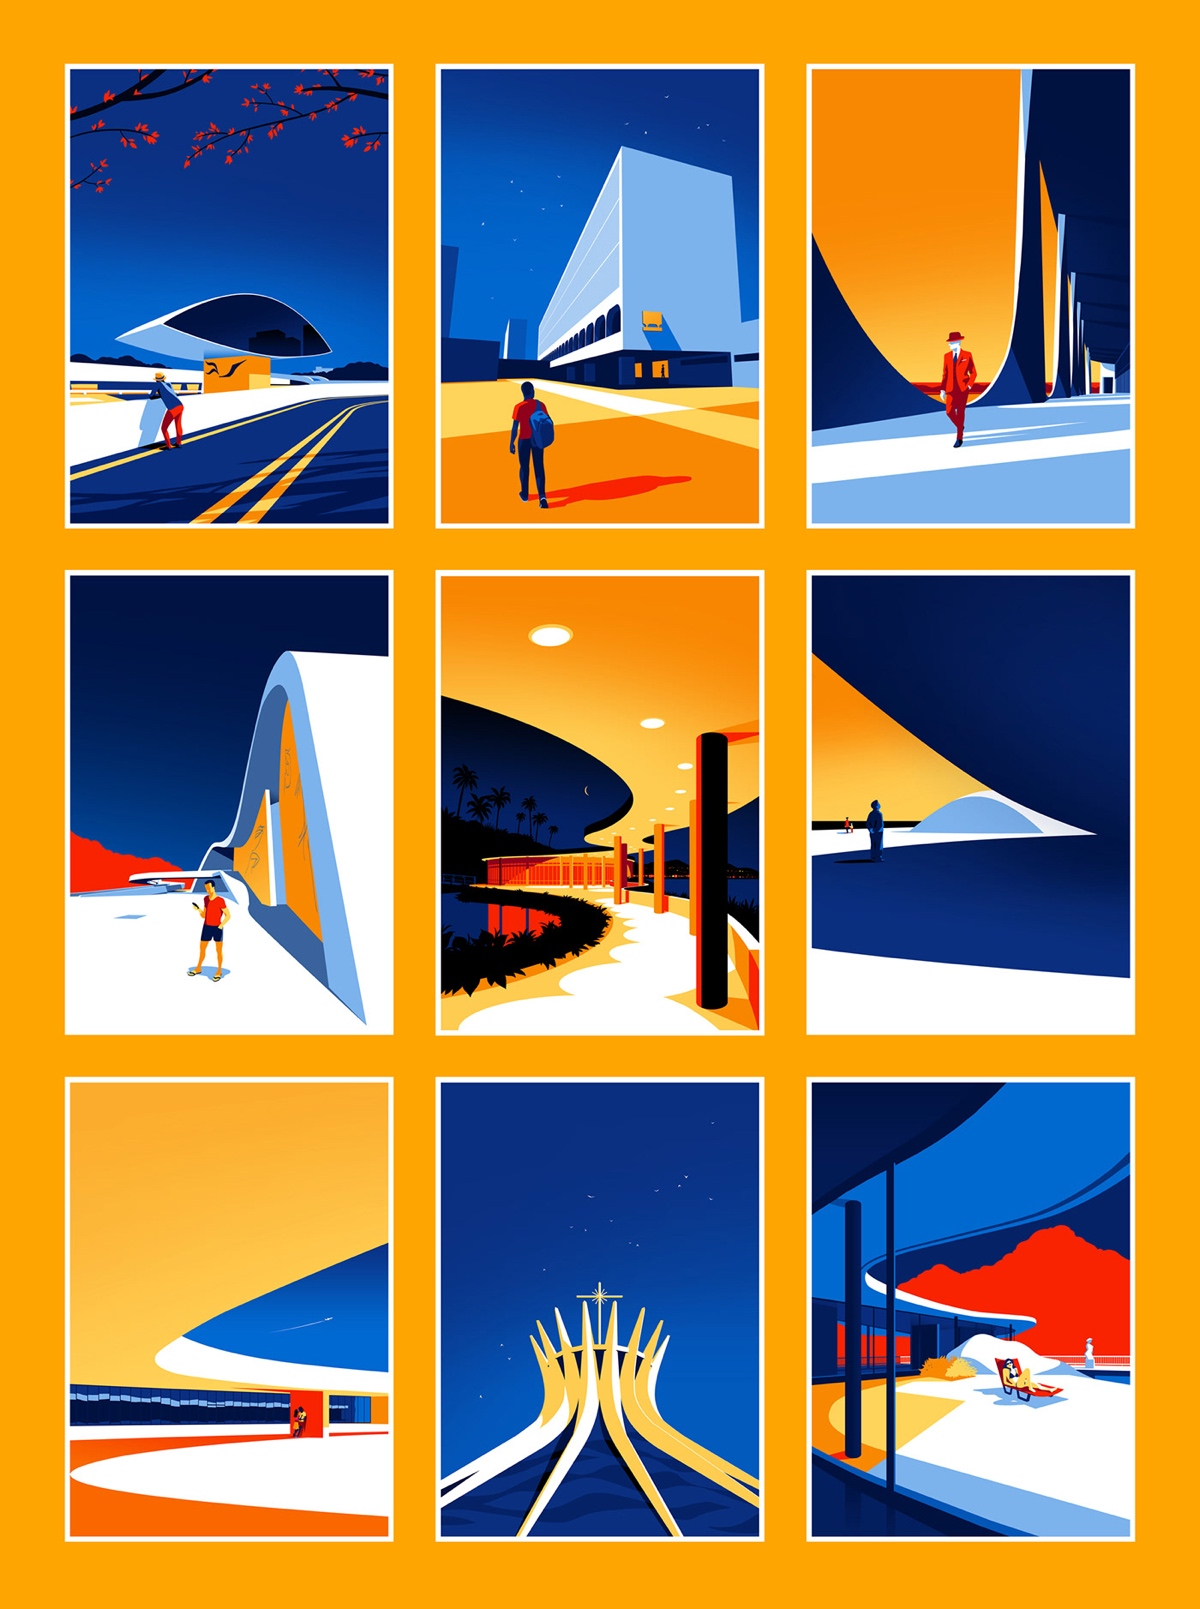 oscar-niemeyer-architecture-illustrations-levente-szabo-8